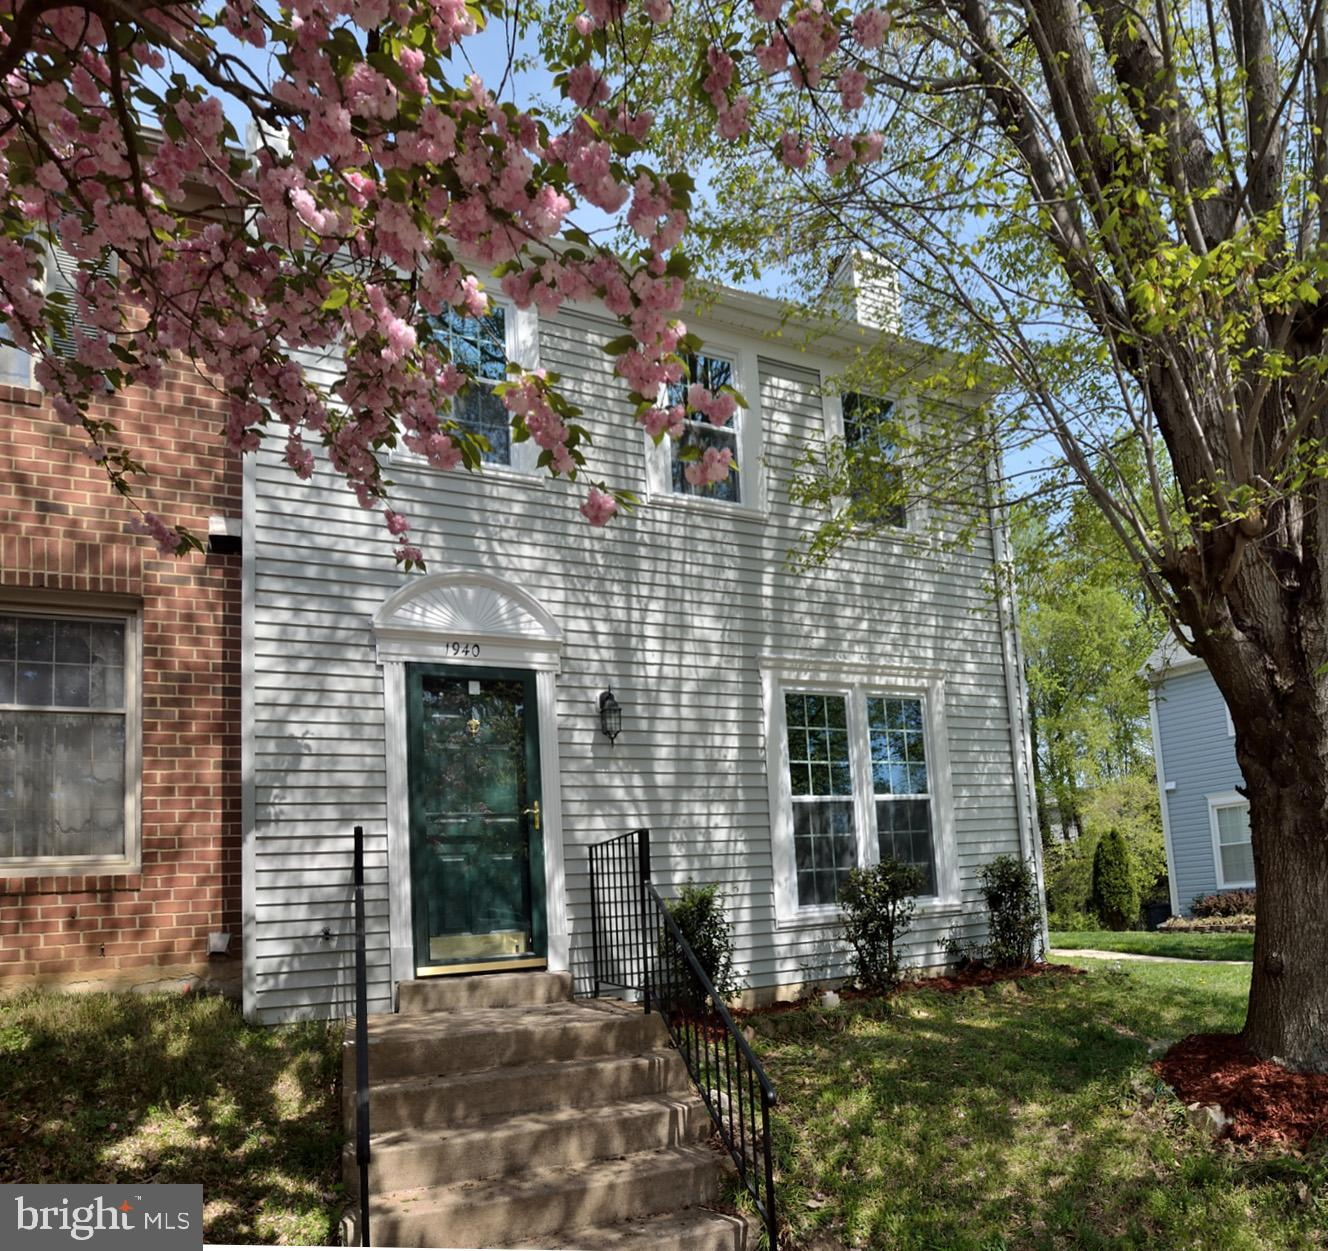 Here's a great Renovated end unit , Move In Ready! Quick settlement! 3 Fin Level TH w/3 BR/3.5 BA! All new Kitchen w/new counter tops, SS appl, New windows,  loads of cabinet space! All new flooring and fresh paint thru out! LR & DR area's on Main Level, Large Mstr Suite & Full BA w/soaking tub/shower! It features a huge fenced level lot backing parkland and tot lot.